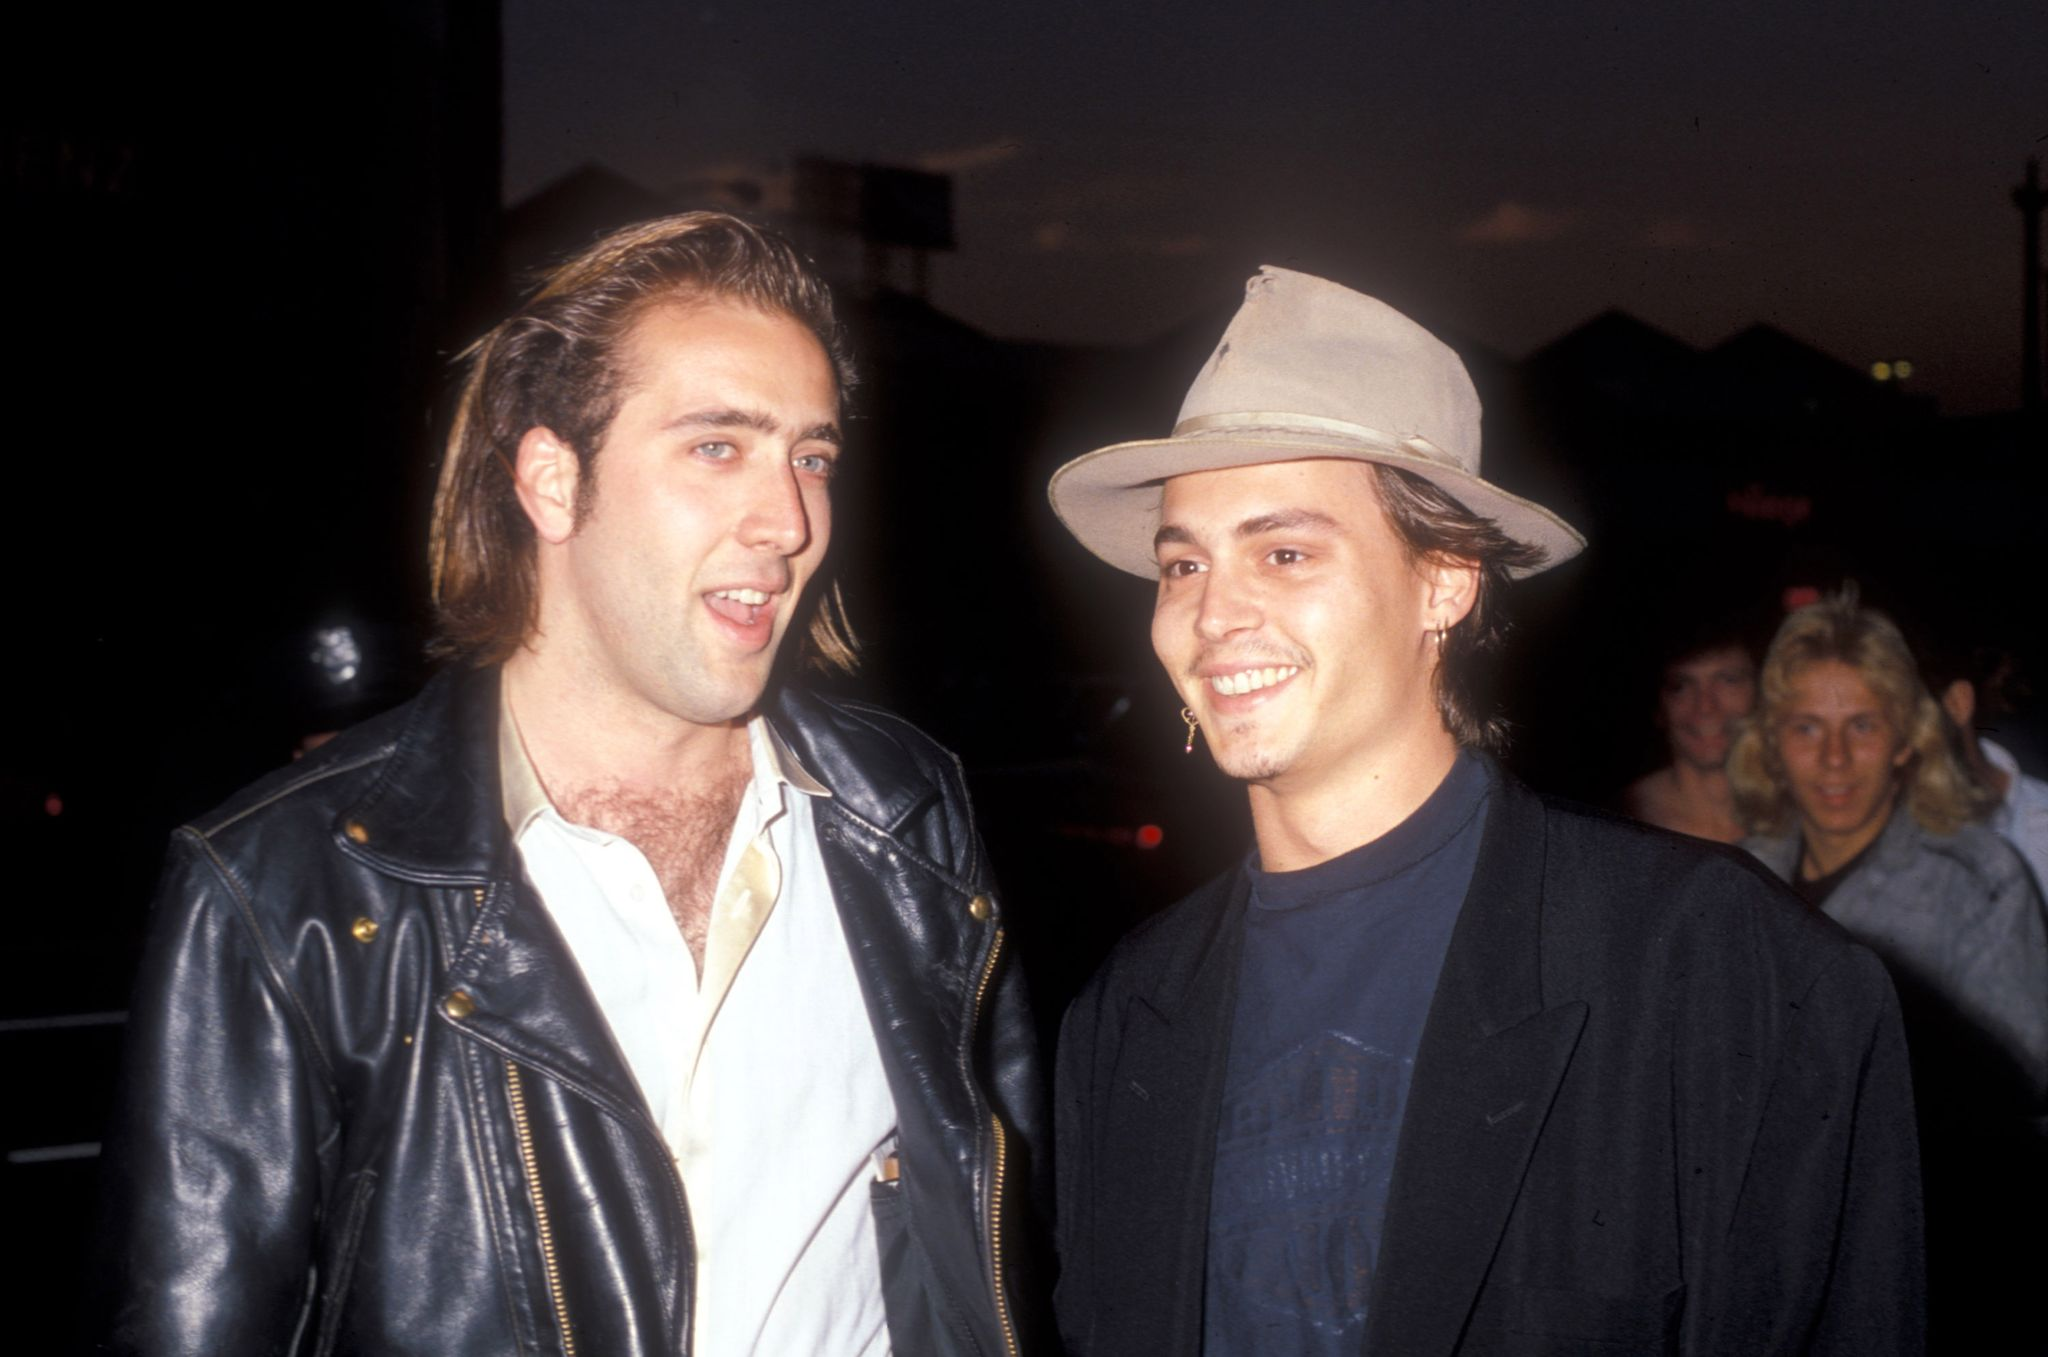 Nicolas Cage helped Johnny Depp's career / Getty Images